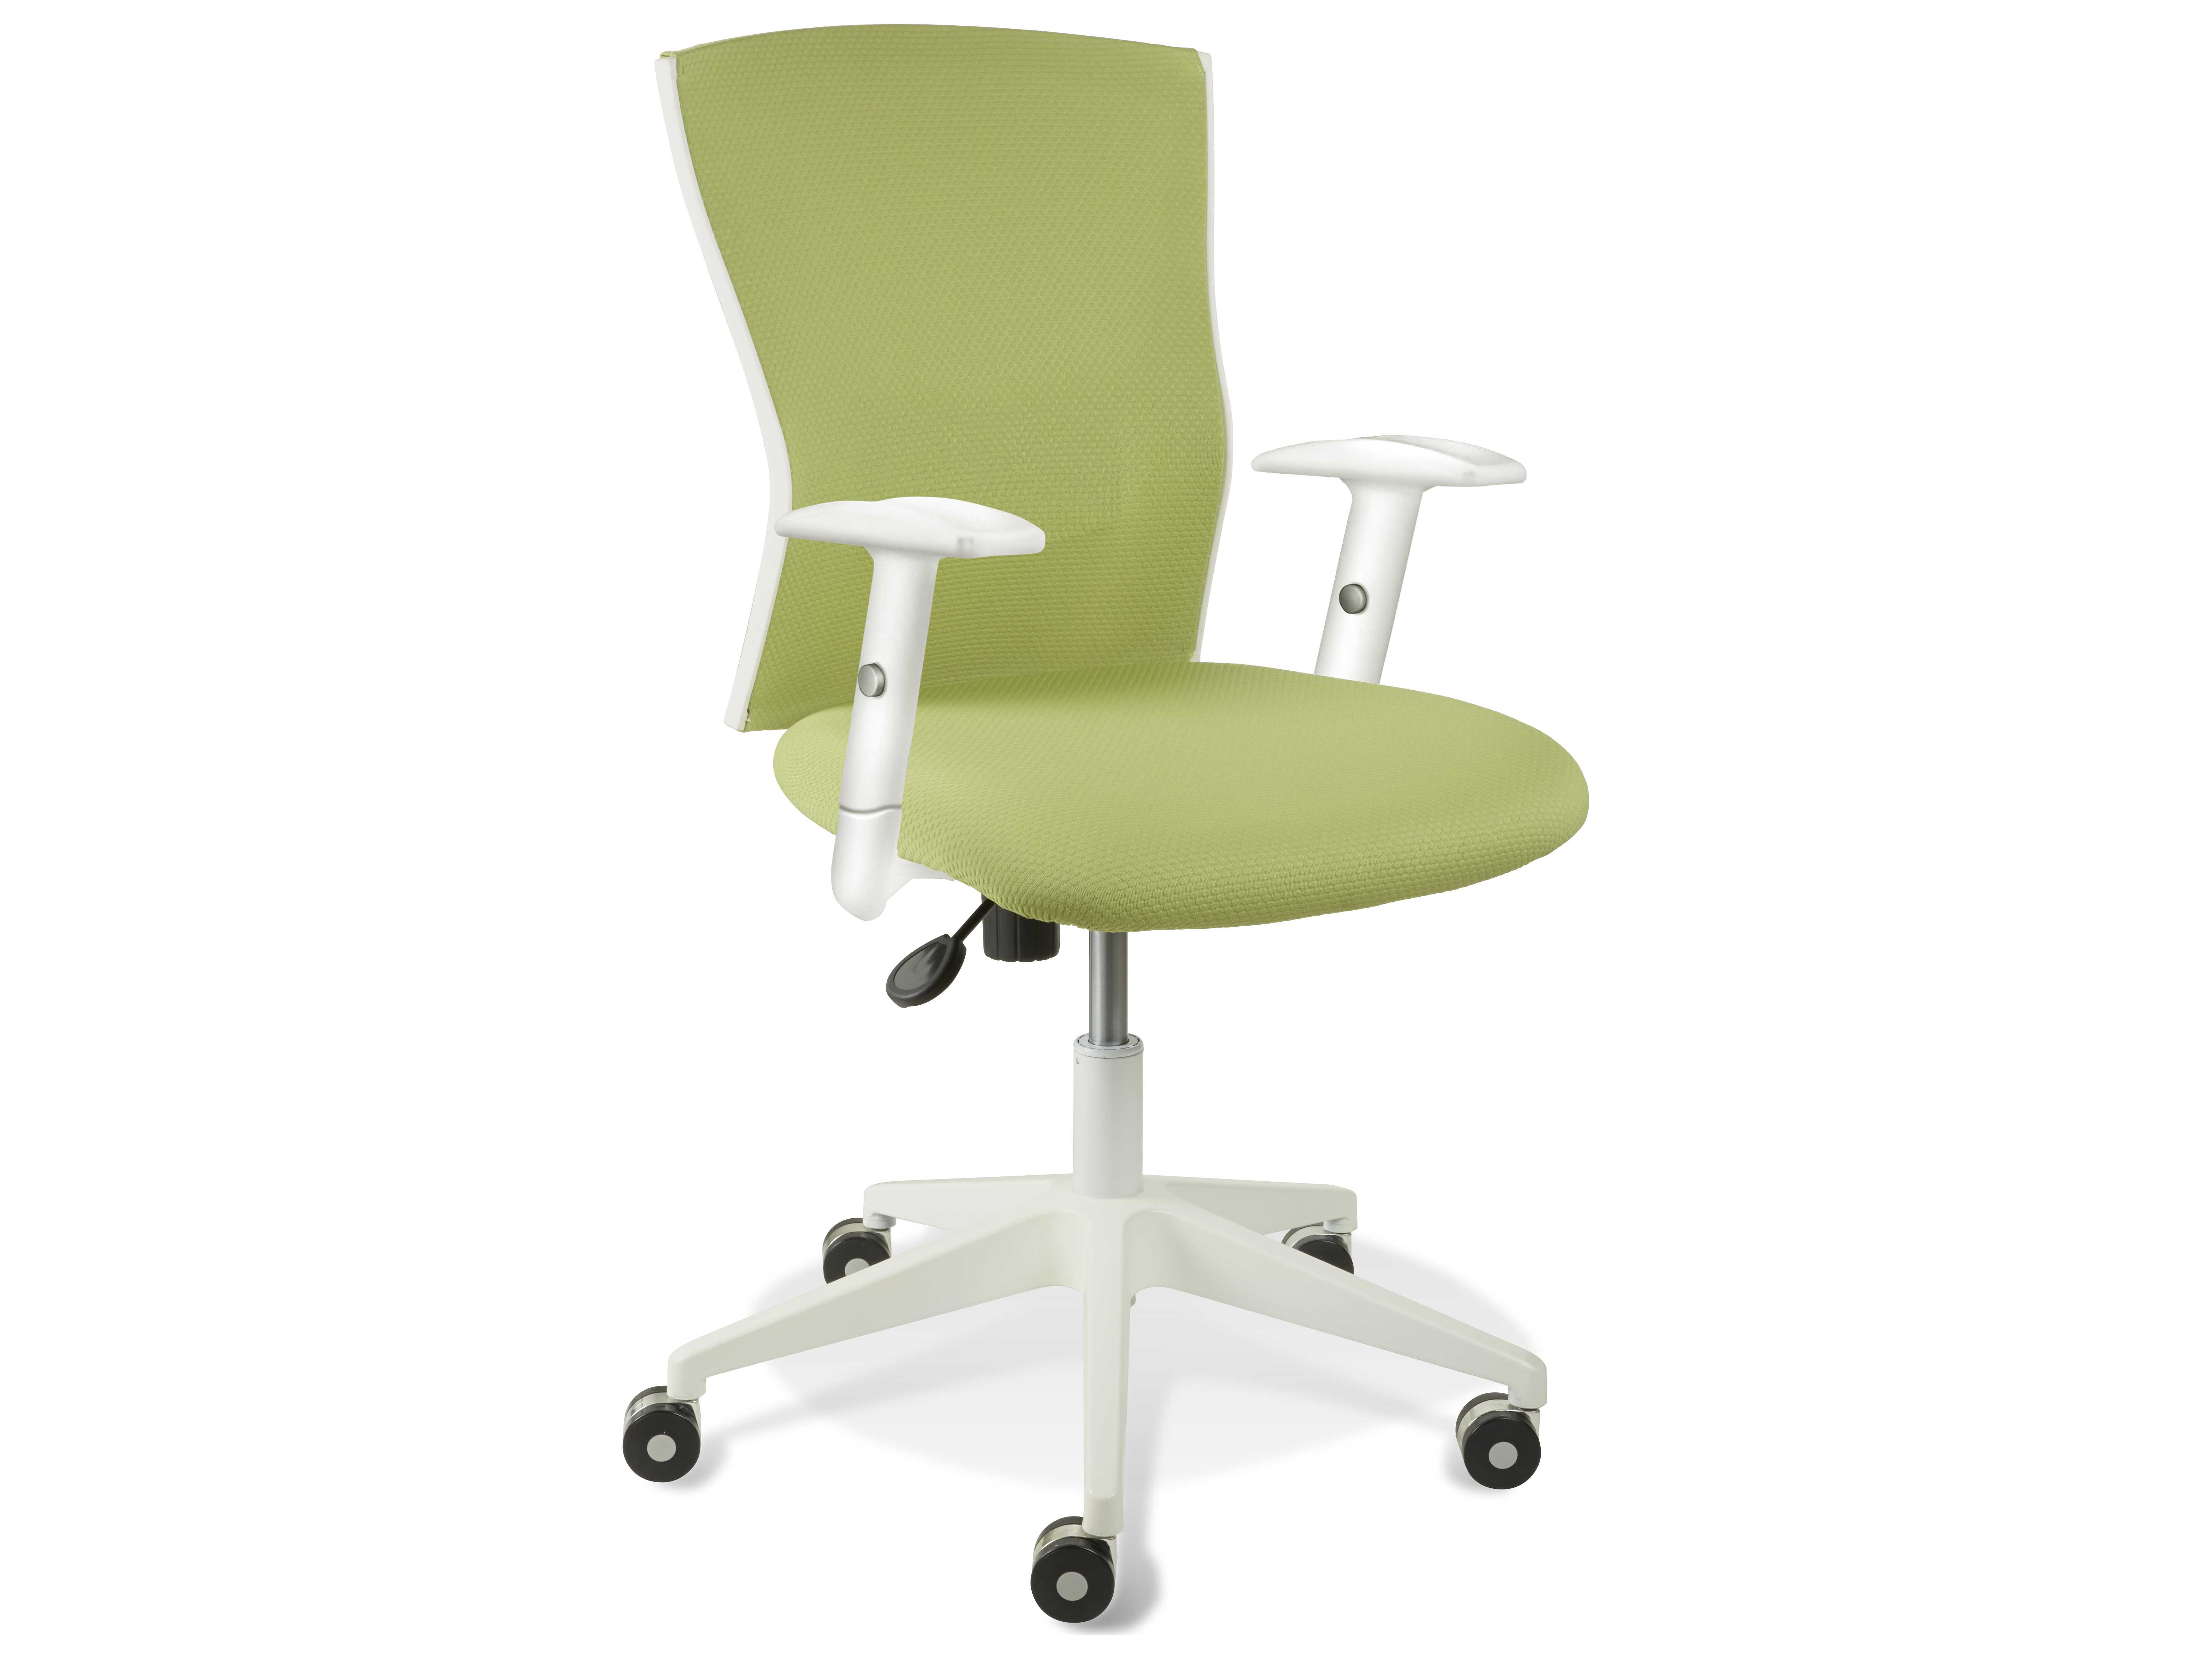 Unique Furniture Sanne Green Arm Office Chair JE53665364